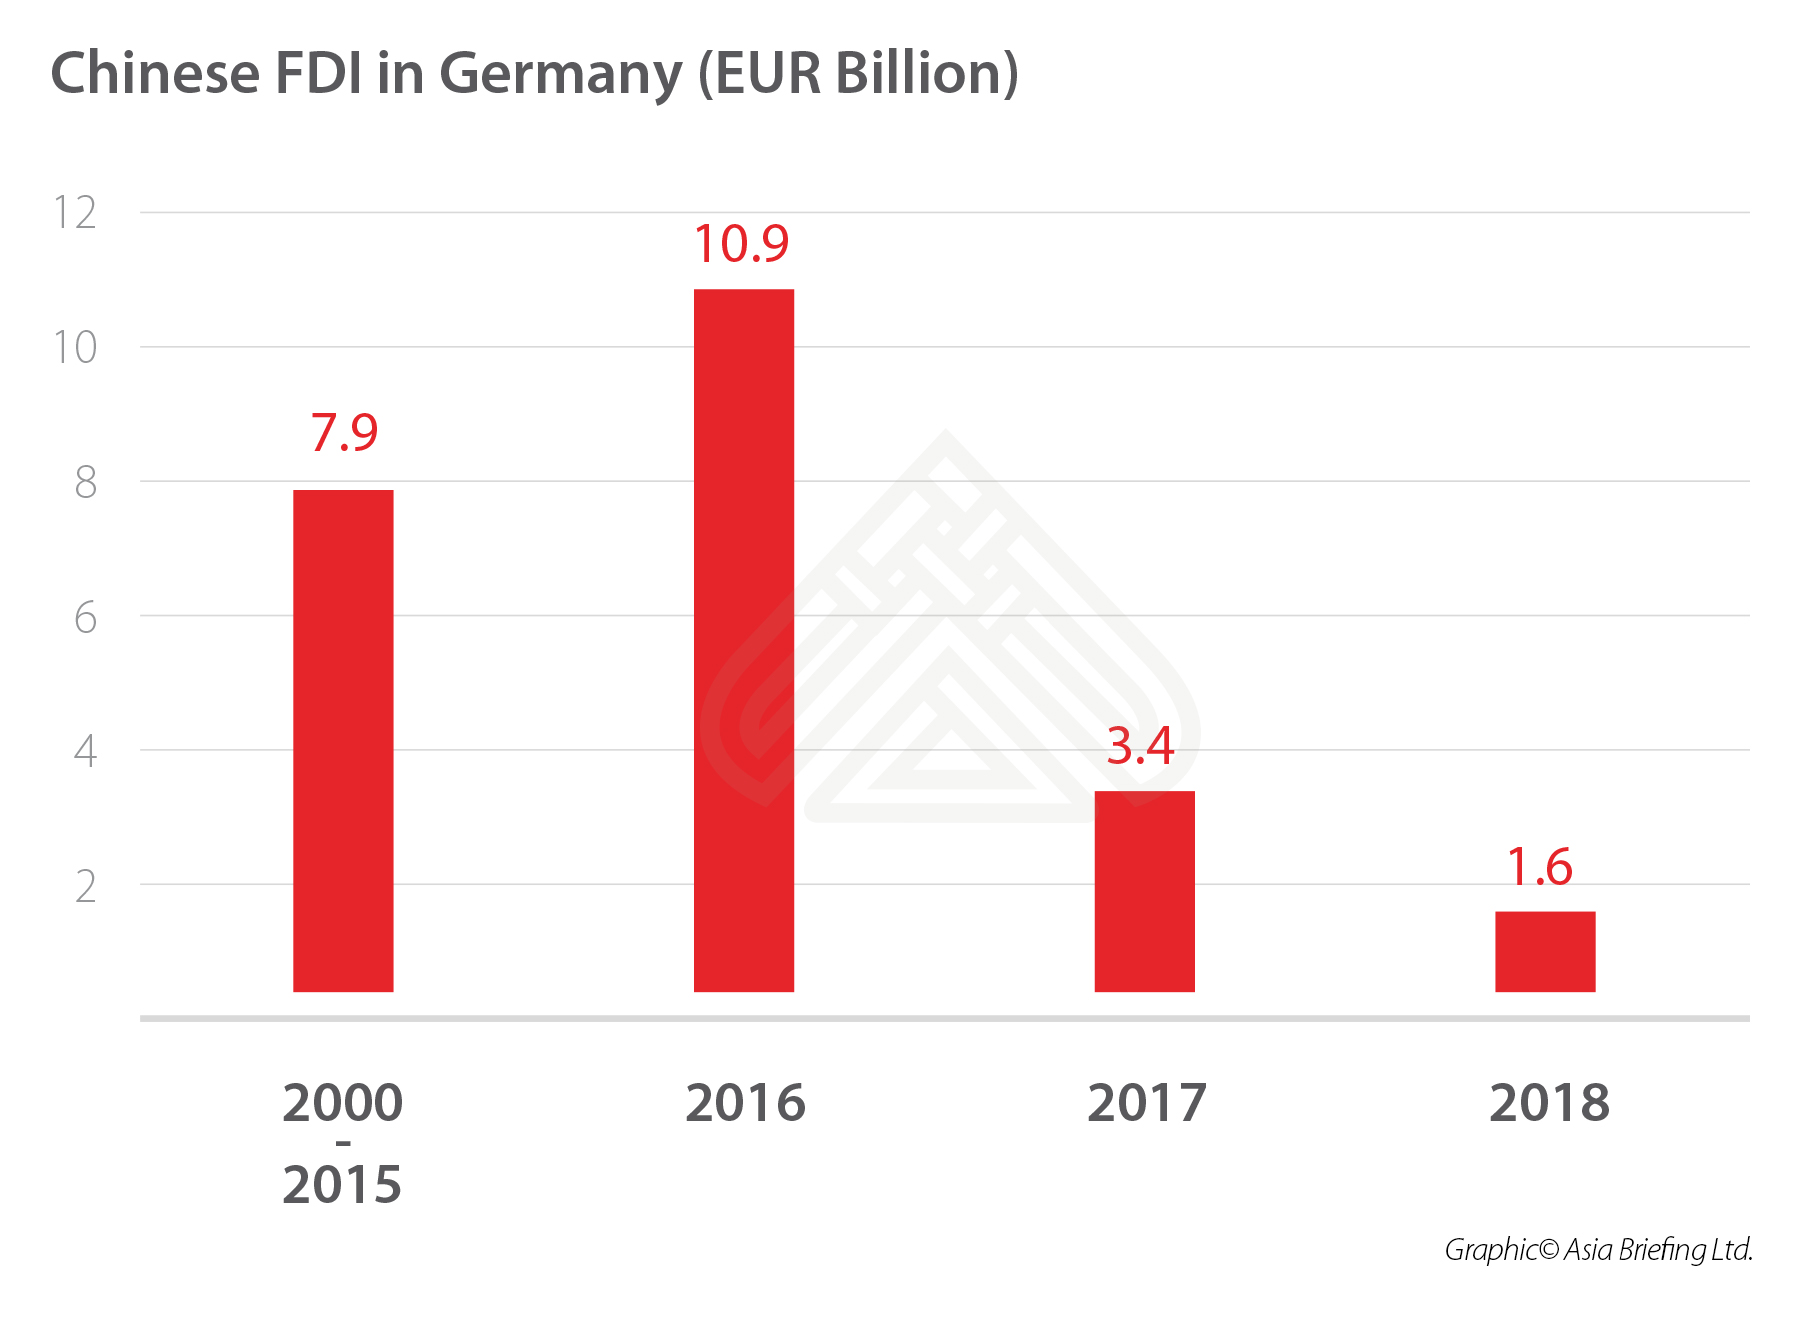 CHINA-FDI-GERMANY